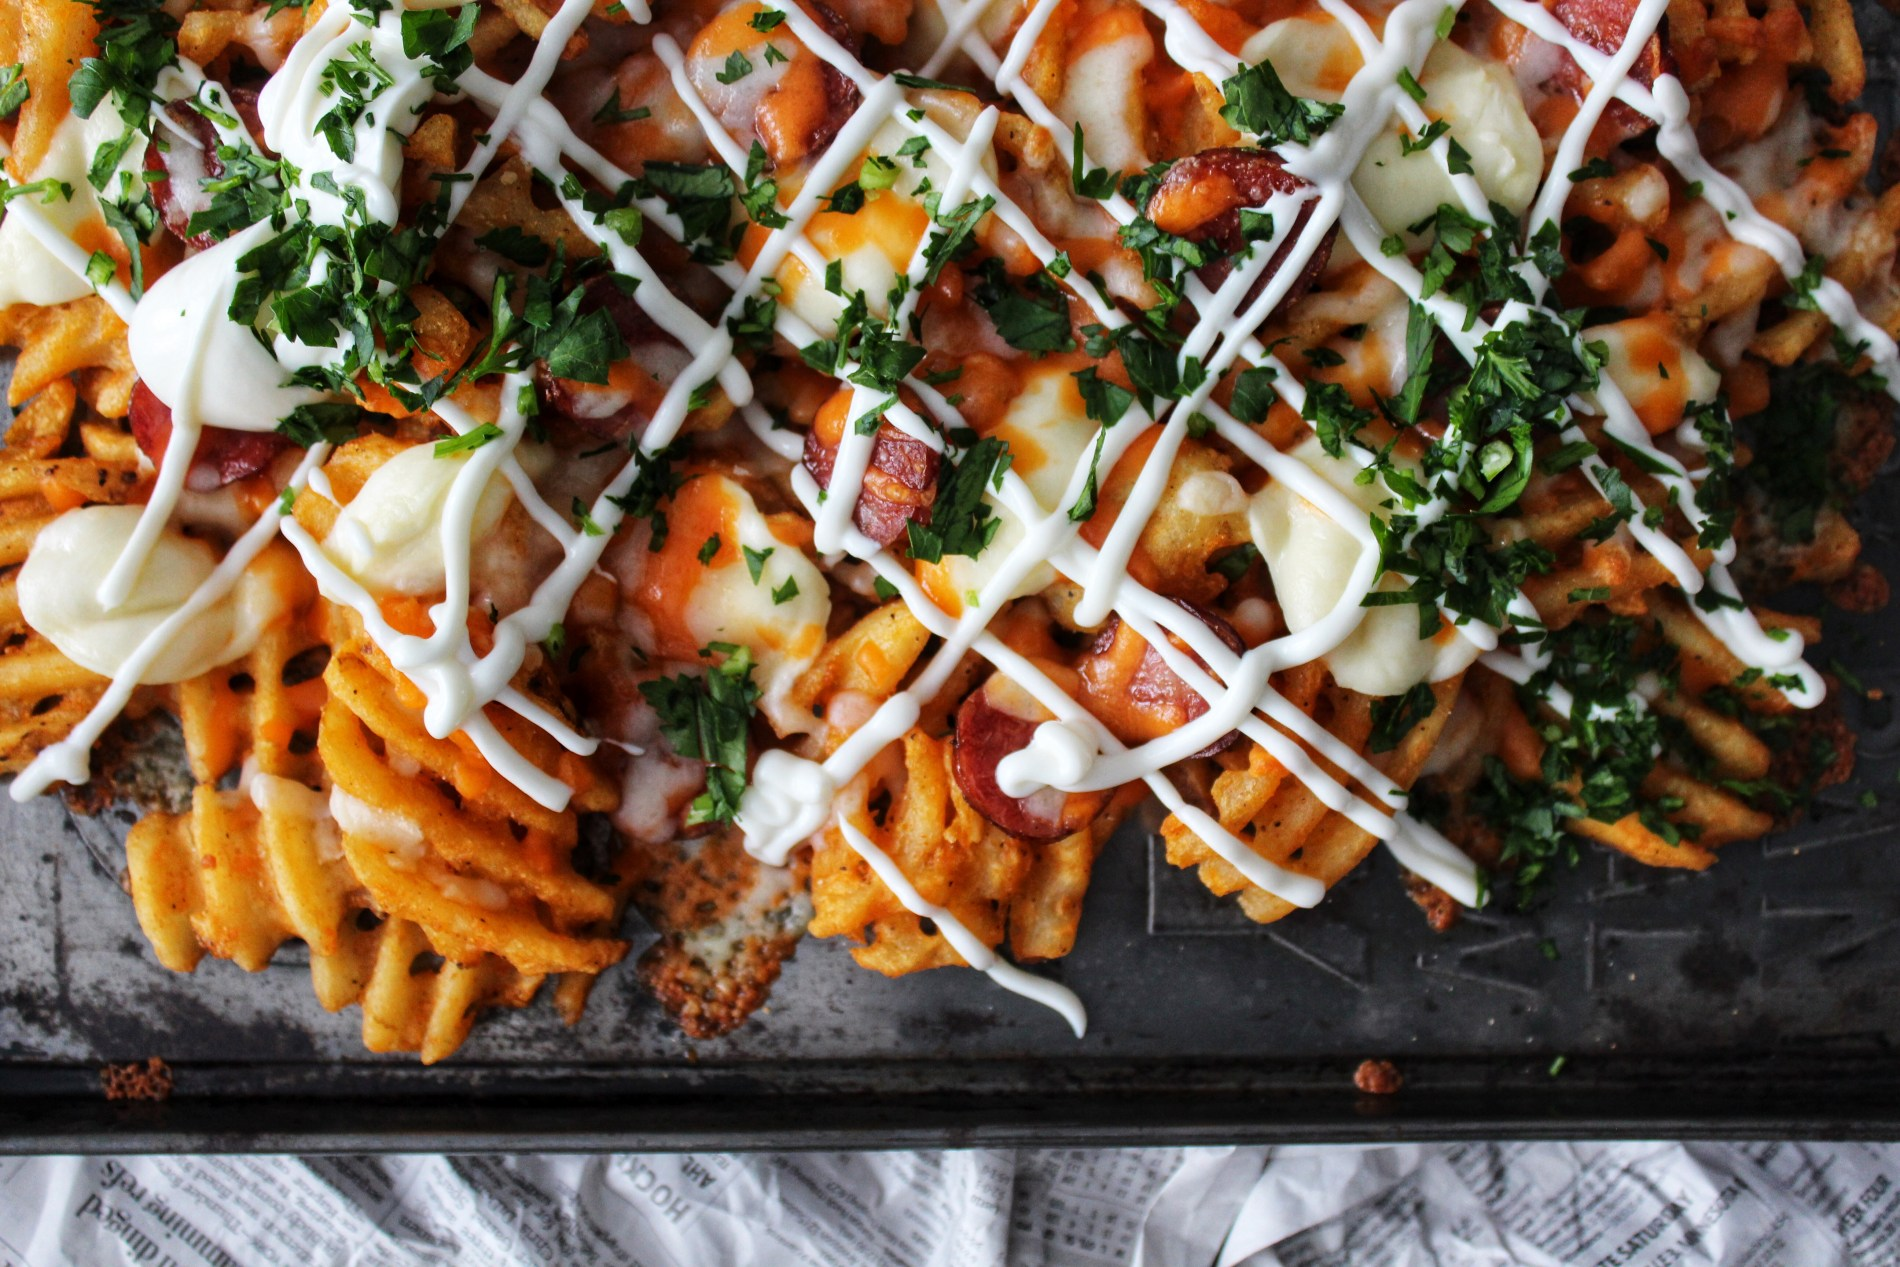 GAME DAY LOADED SWEET POTATO WAFFLE FRIES